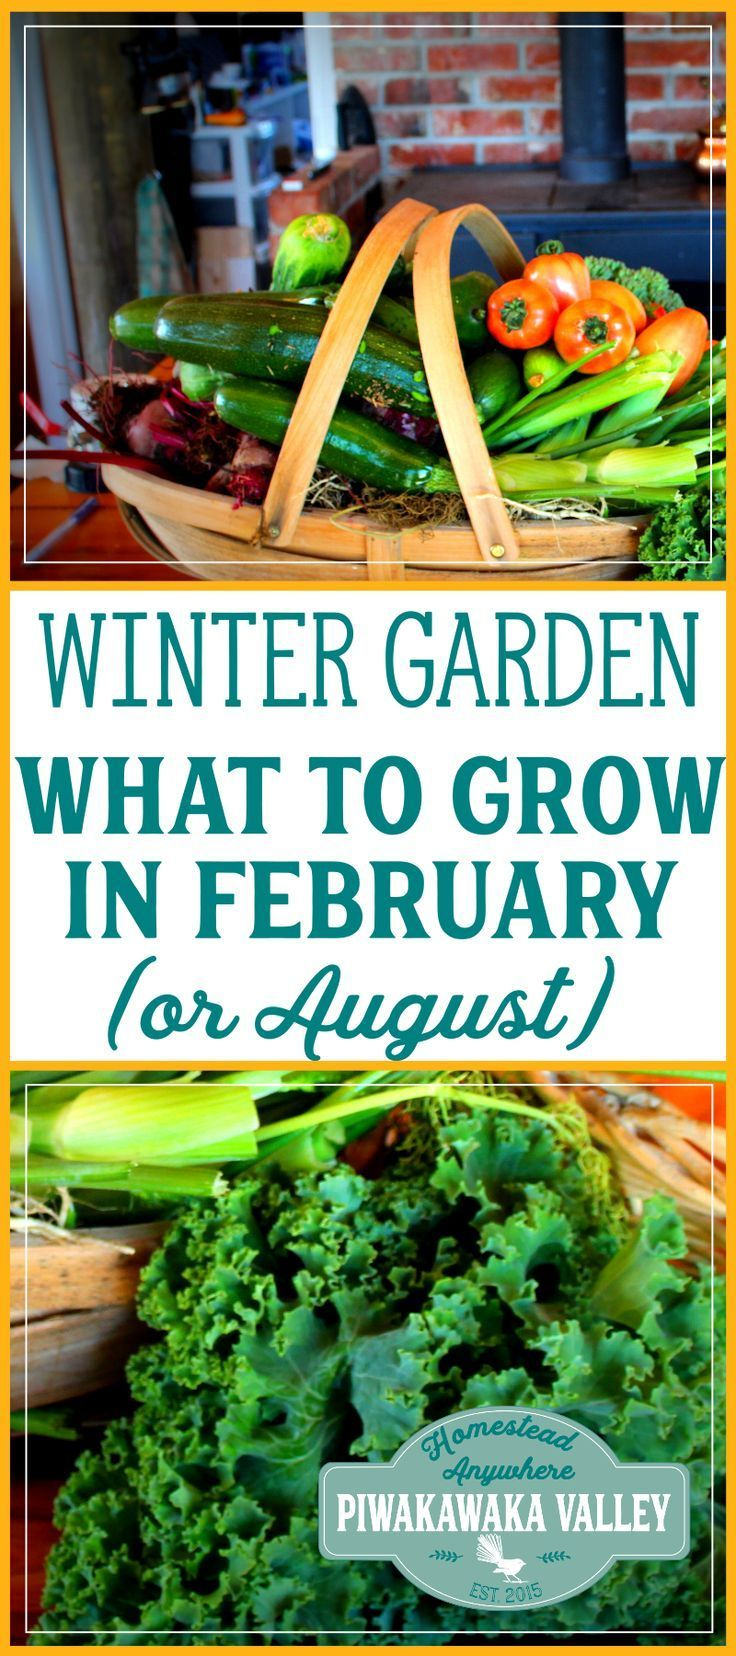 What to Plant in your Winter Vegetable Garden in February (or August!) #veggiegardens